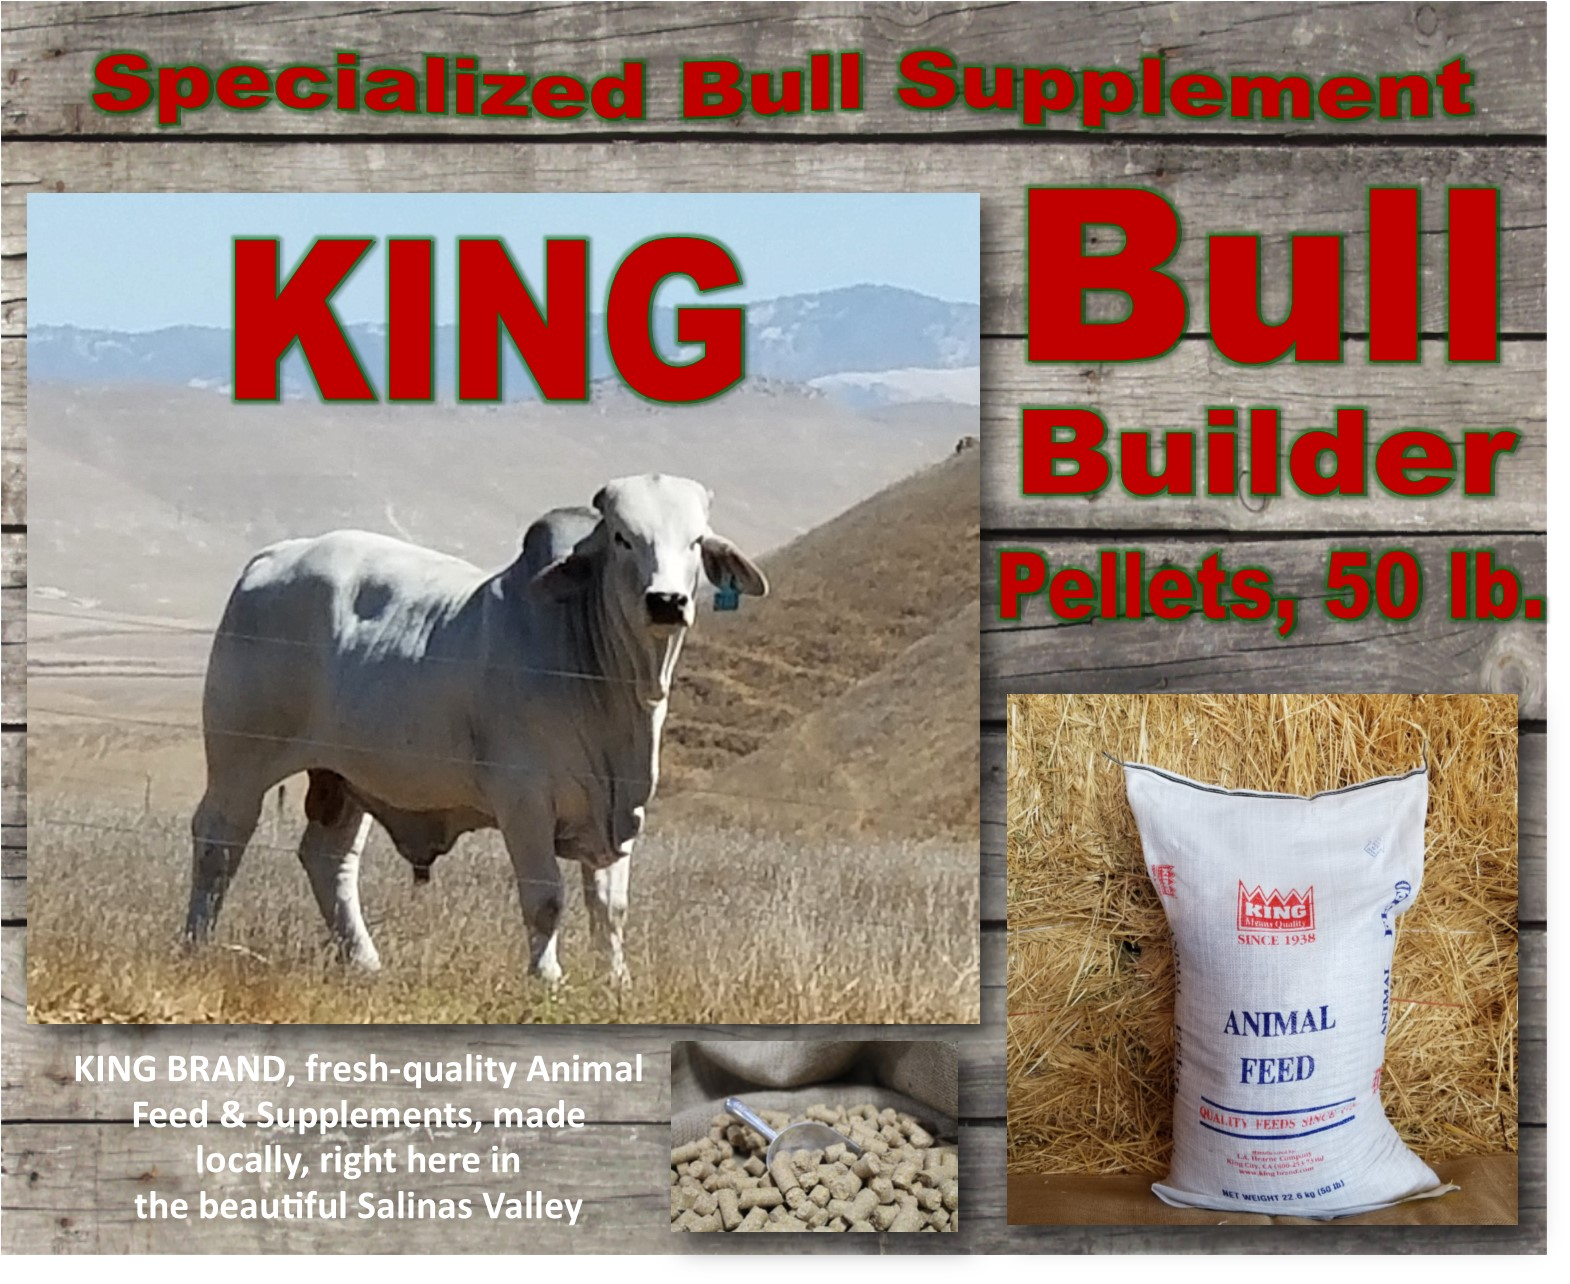 king-bull-builder-ad-with-bray-bull-on-wood-with-feed-sack.jpg